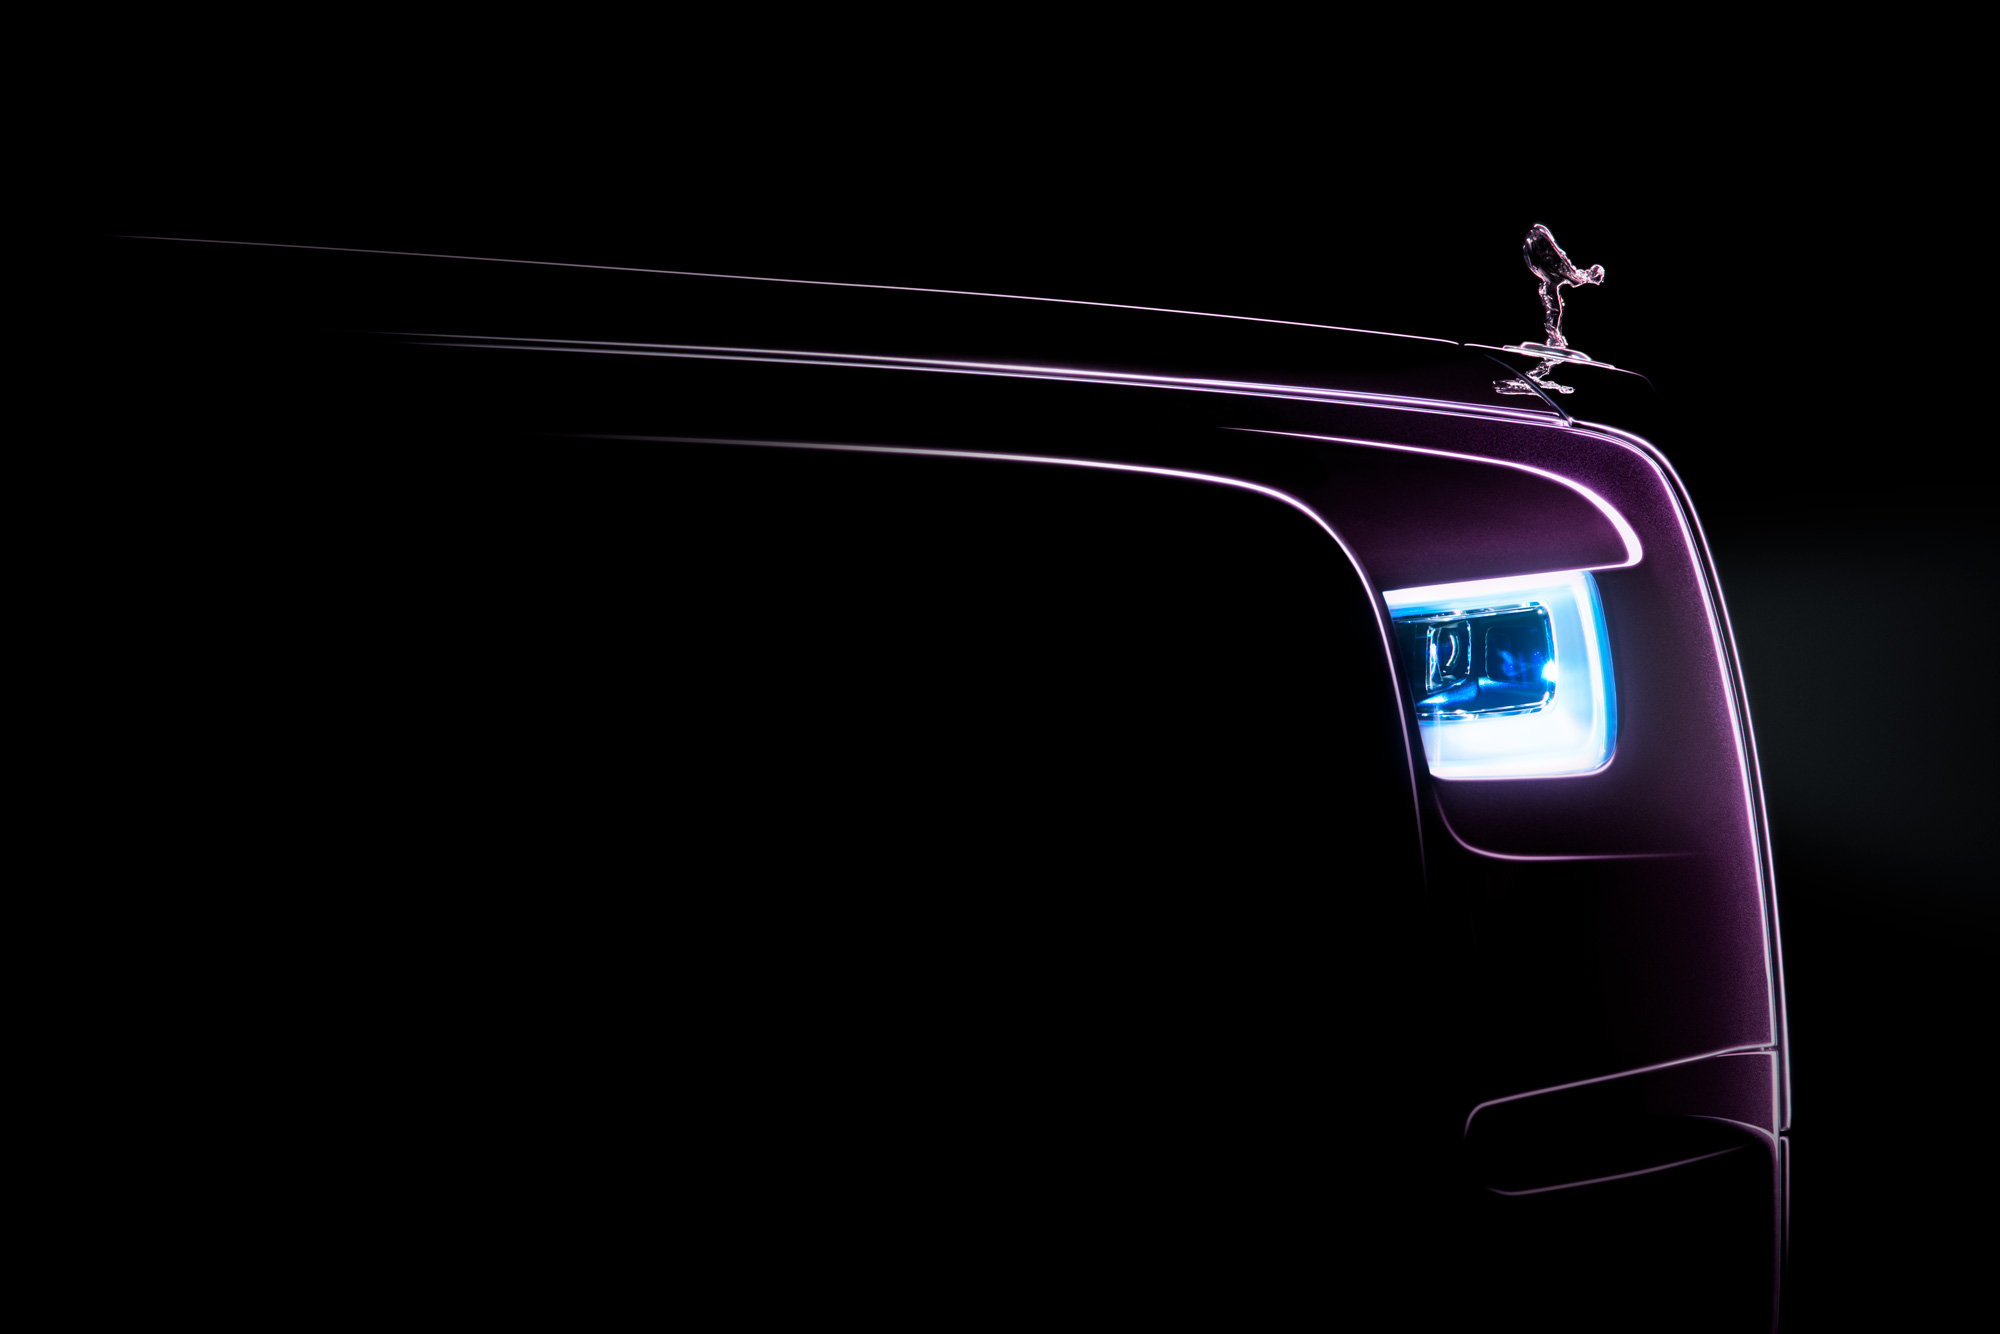 Rolls-Royce Gives us a Glimpse of the New Phantom